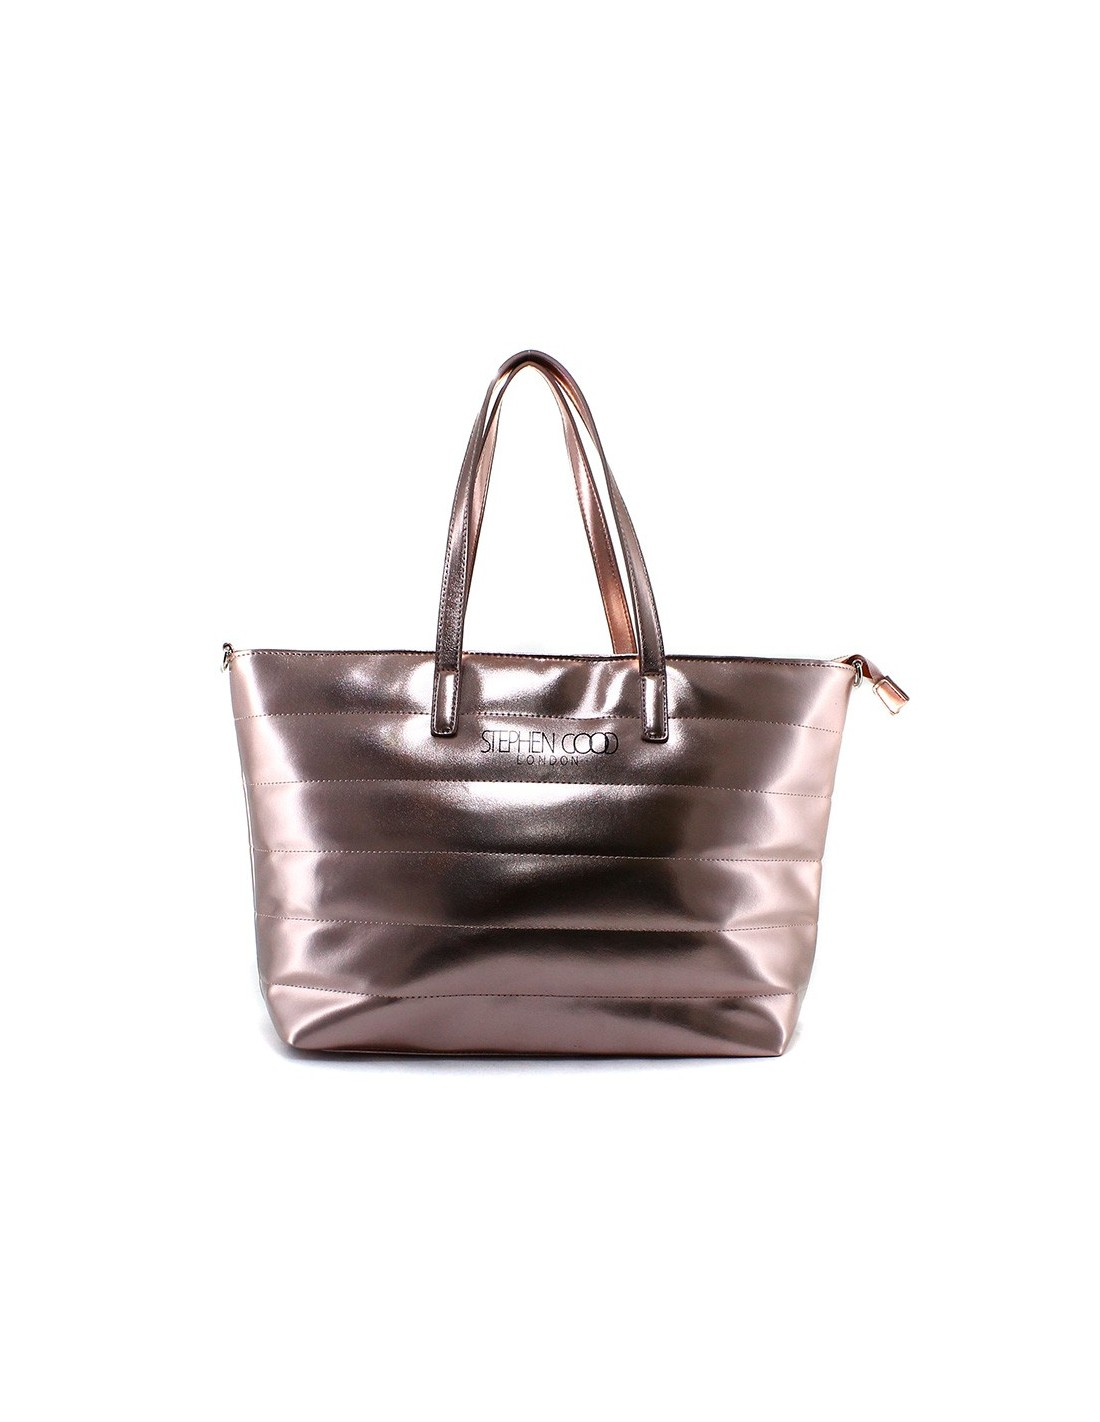 Stephen Good London - Bag